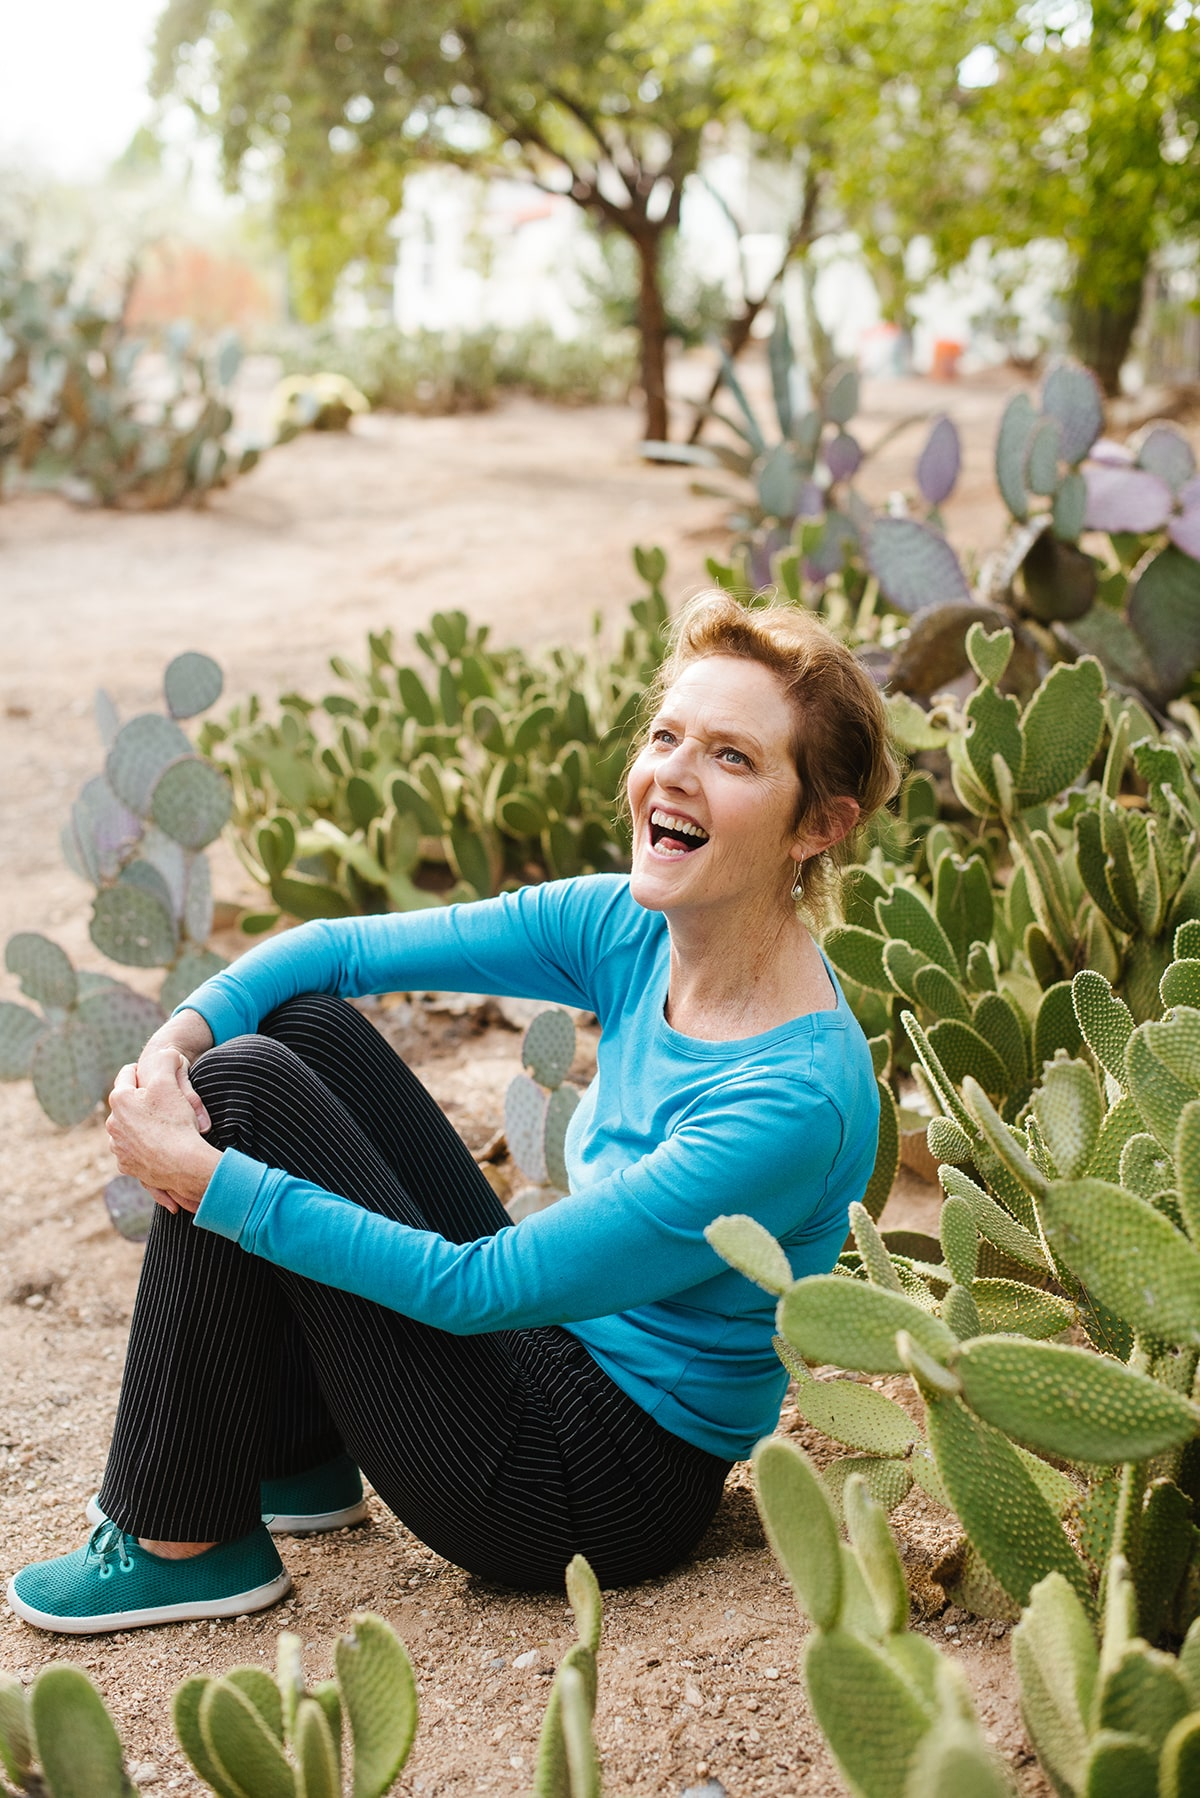 Nell sitting in front of several cactus plants in the Arizona desert